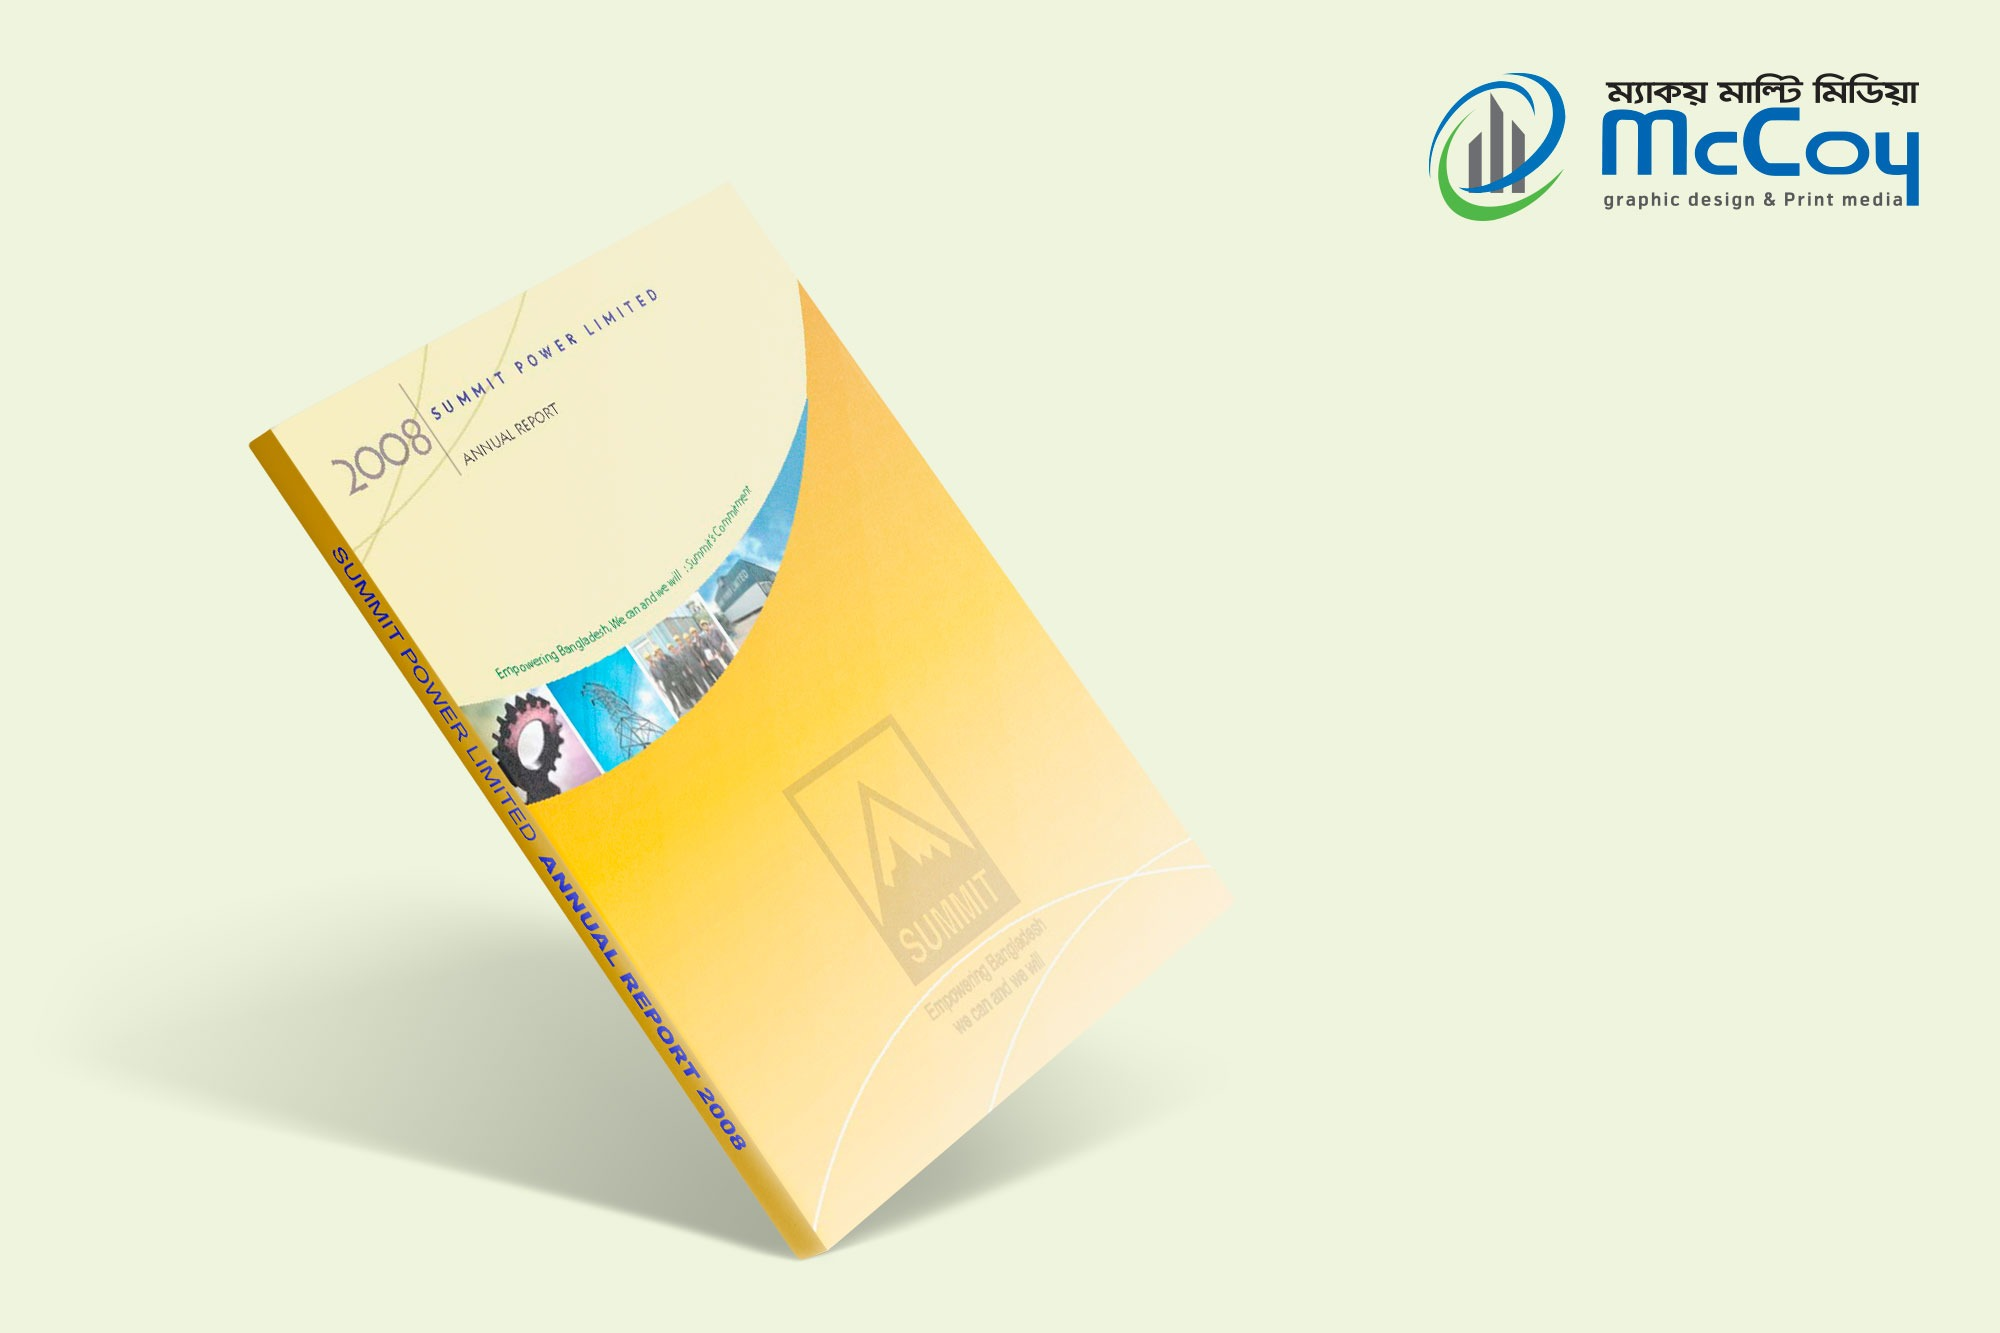 SUMMIT POWER ANNUAL REPORT 2008